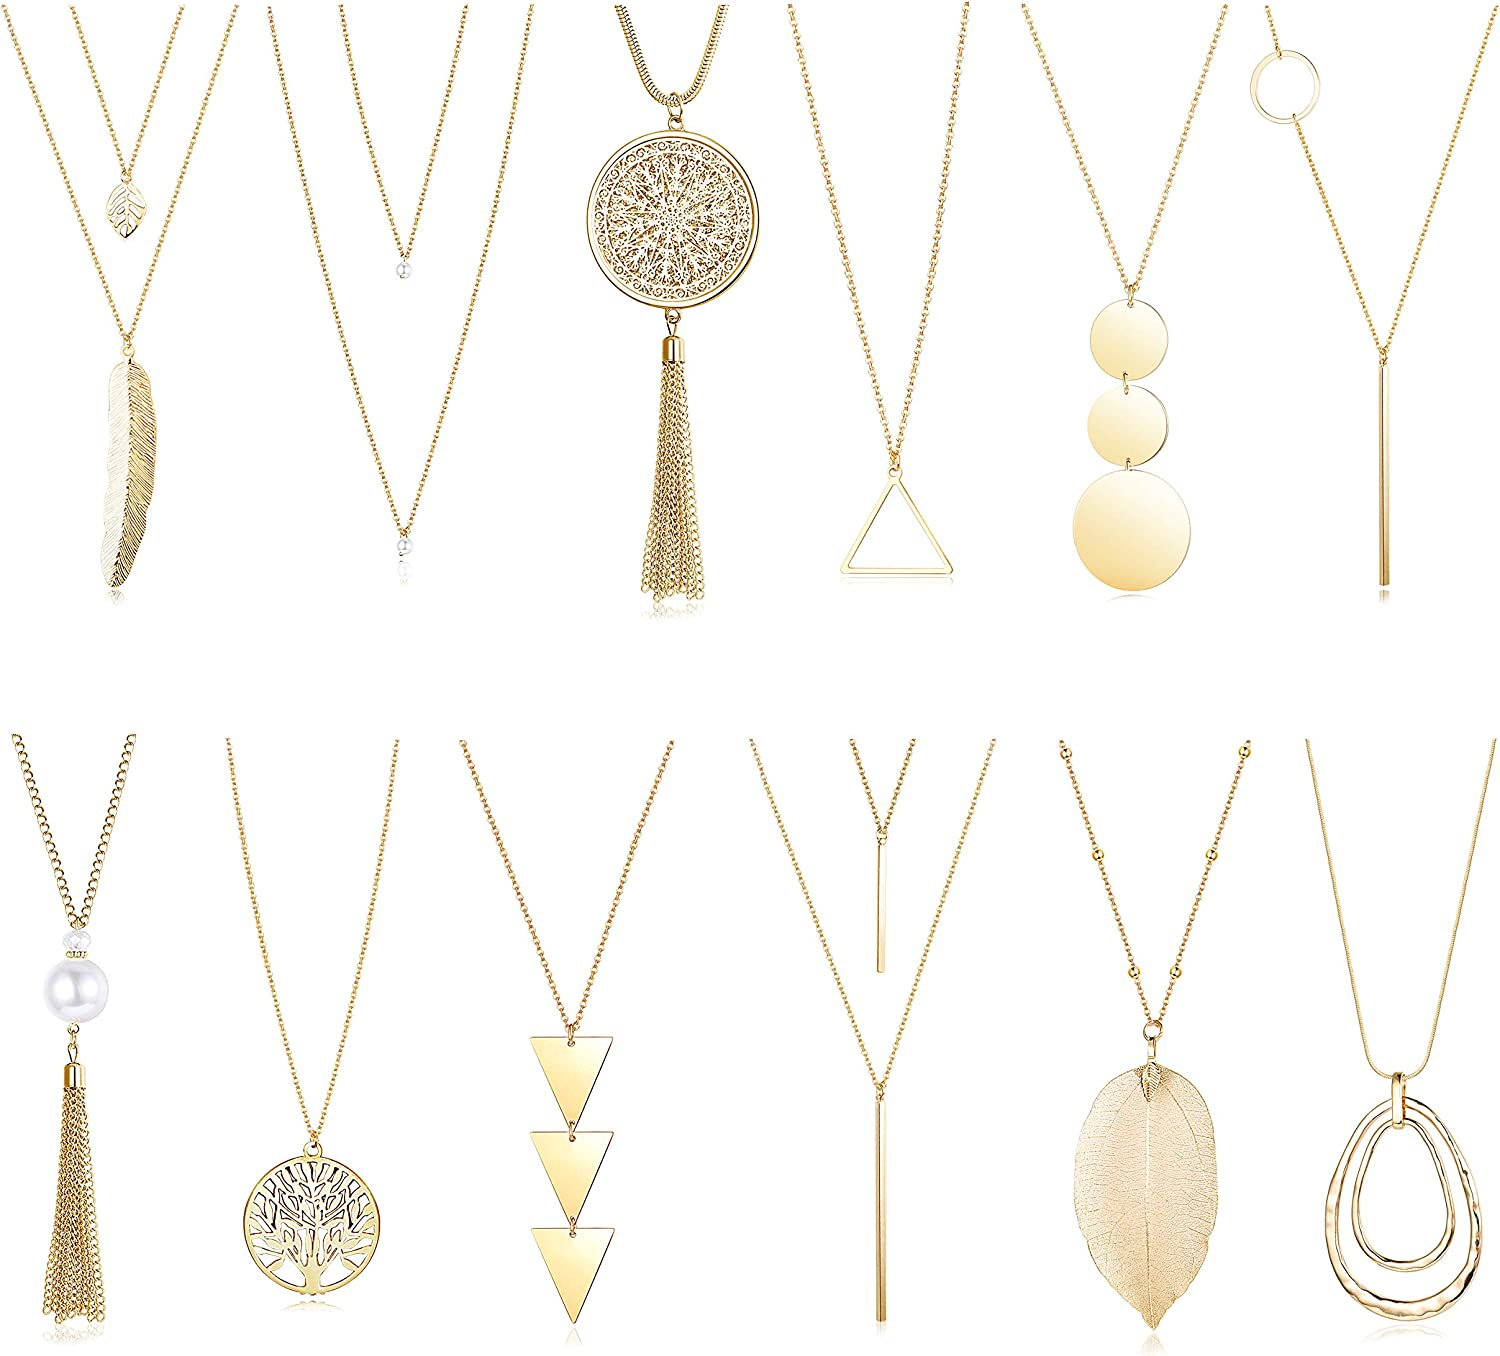 FINREZIO 12PCS Long Pendant Necklace for Women Simple Three Triangle Arrow Circle Leaf Tree Pearl Knot Tassel Y Strands Statement Necklaces Set